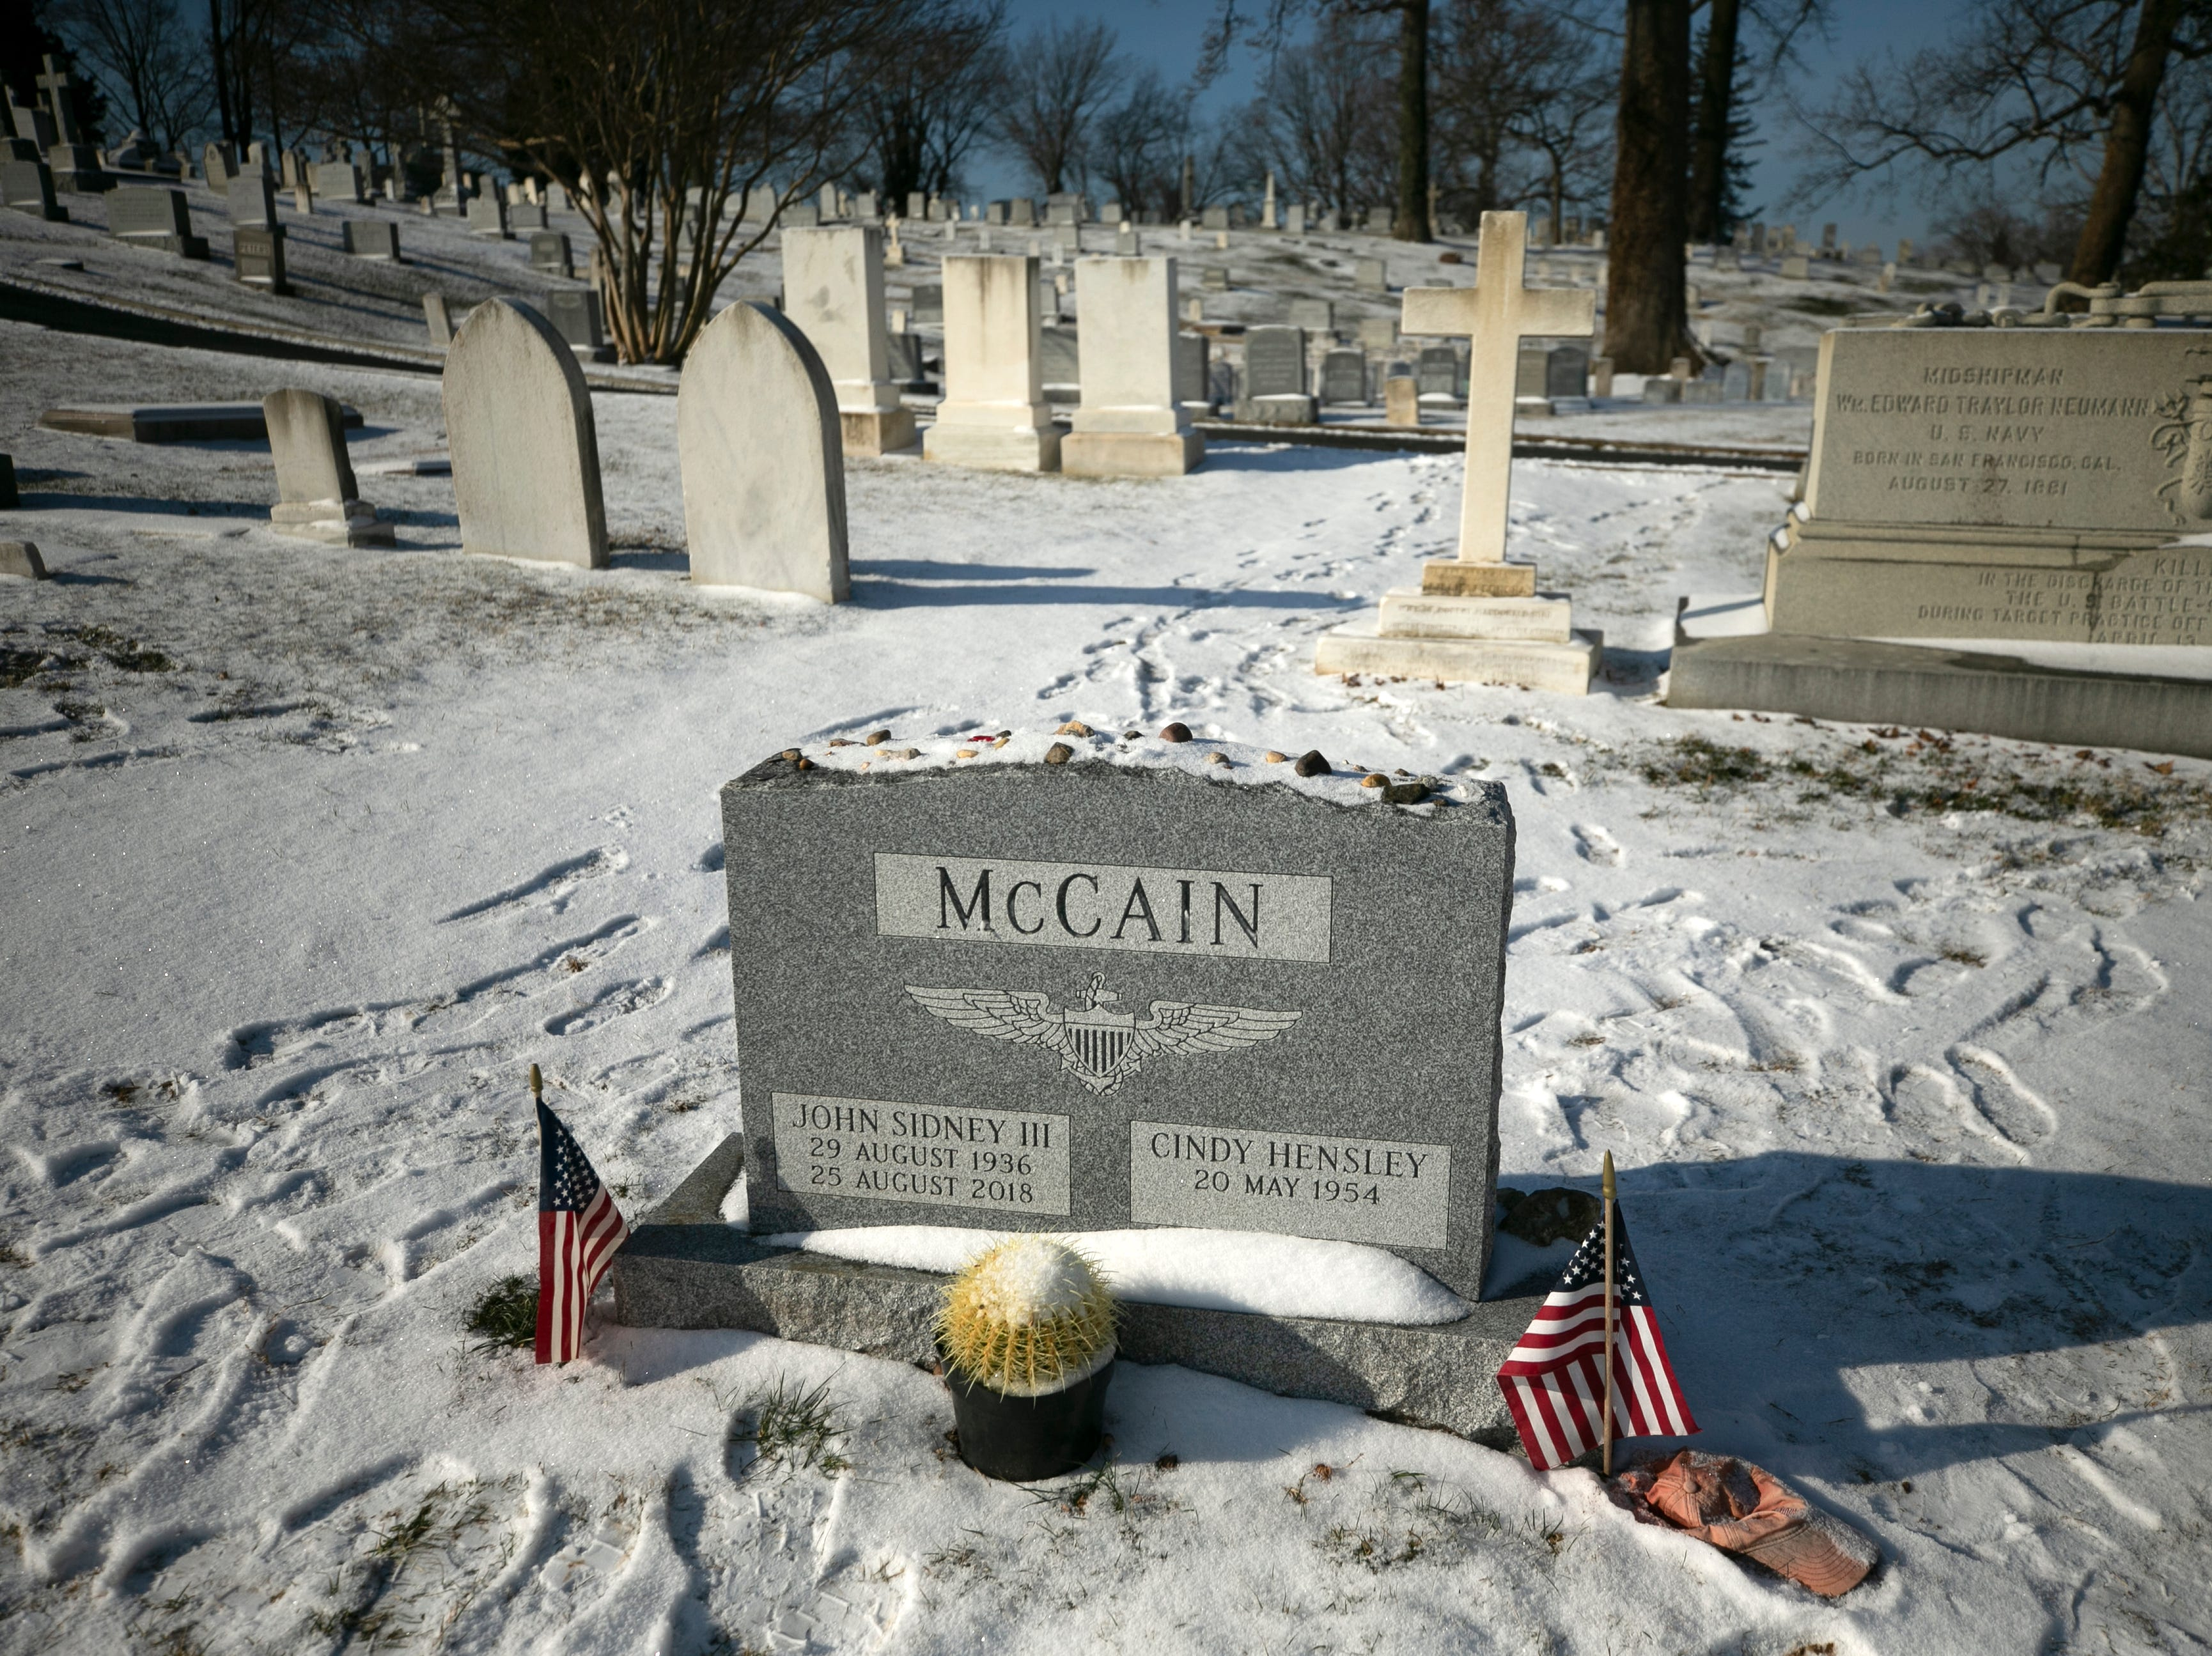 The grave site of the late U.S. Sen. John McCain is seen at the United States Naval Academy Cemetery in Annapolis, Maryland, on Feb. 2, 2019.